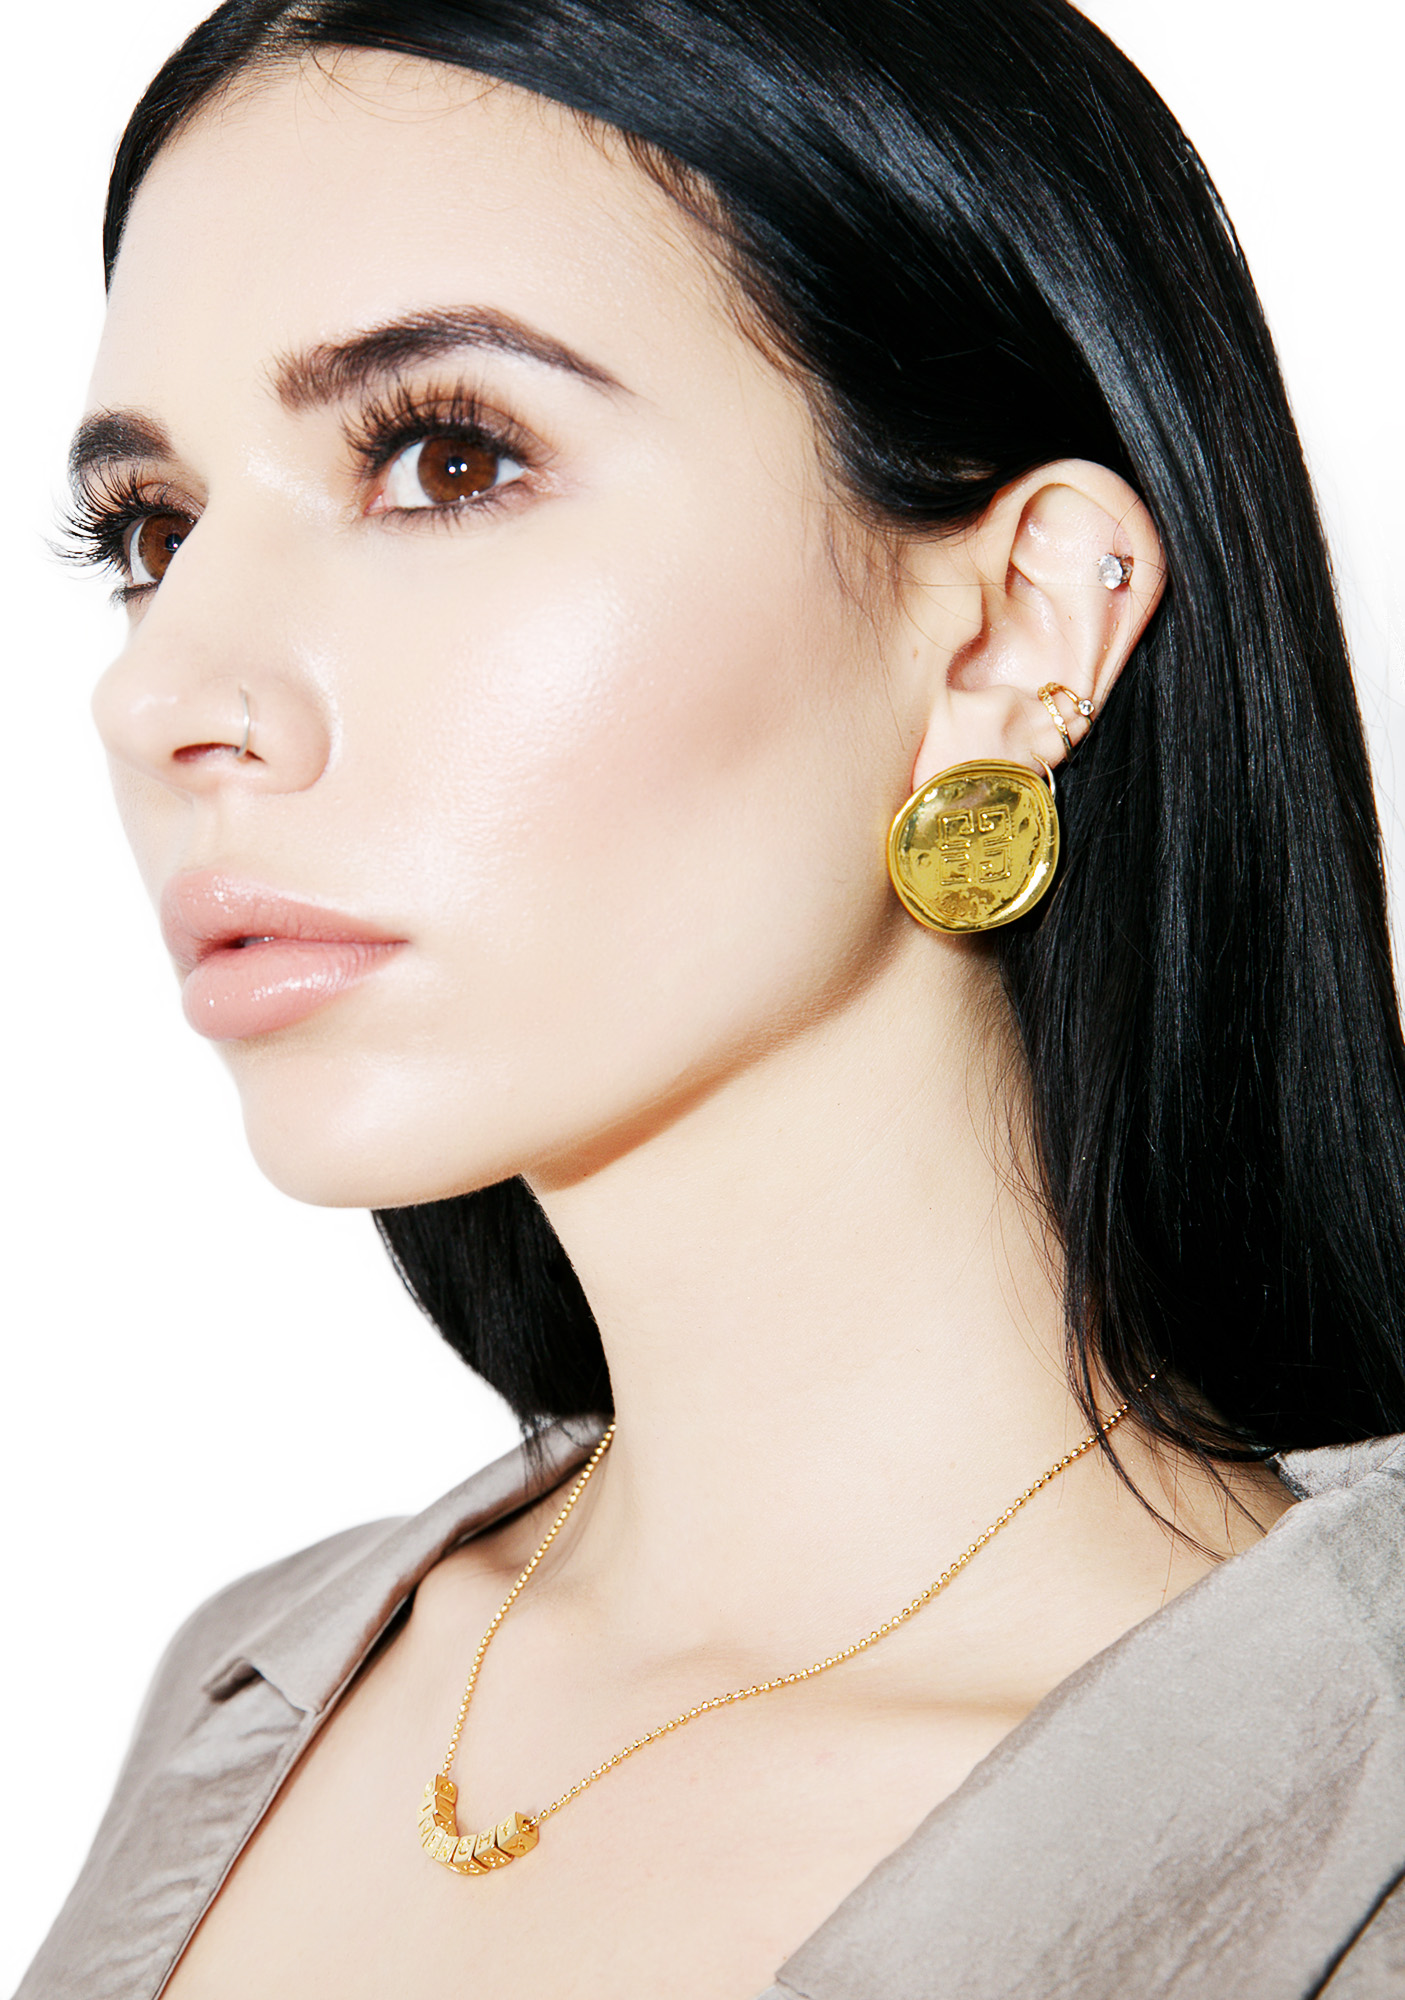 Refurbished Givenchy Coin Earrings